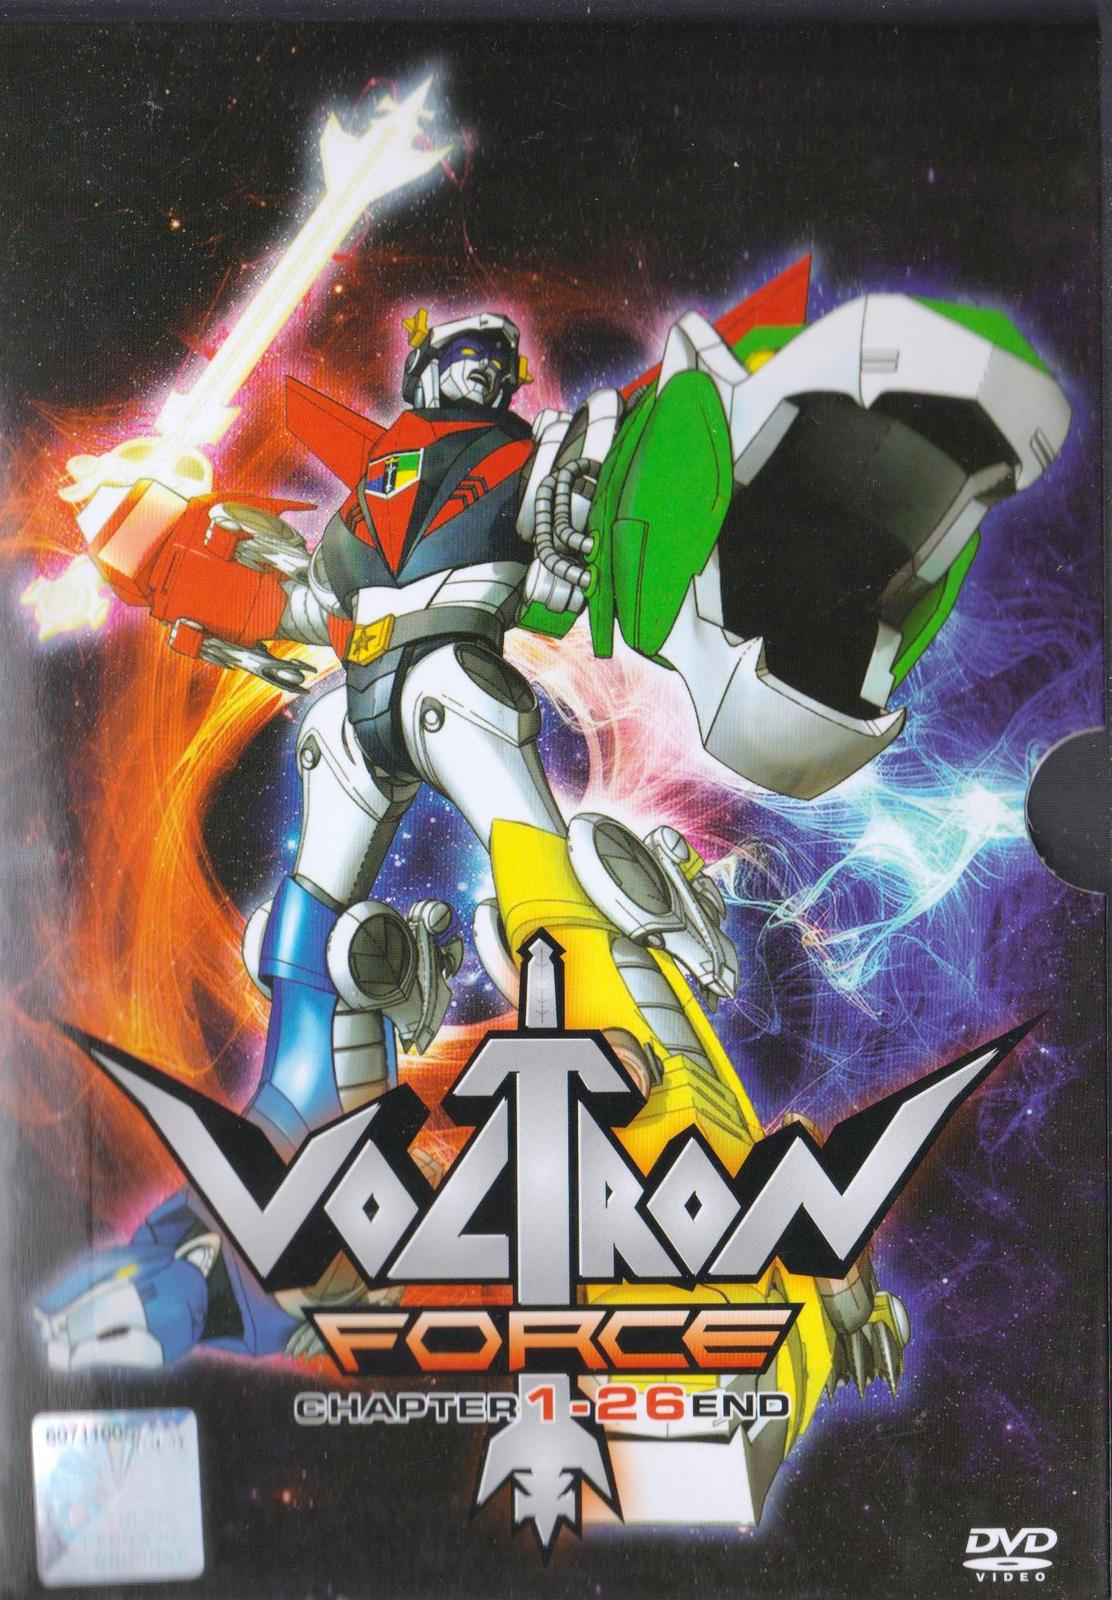 Primary image for Anime DVD Voltron Force Chapter 1-26 End English Dubbed Free Shipping